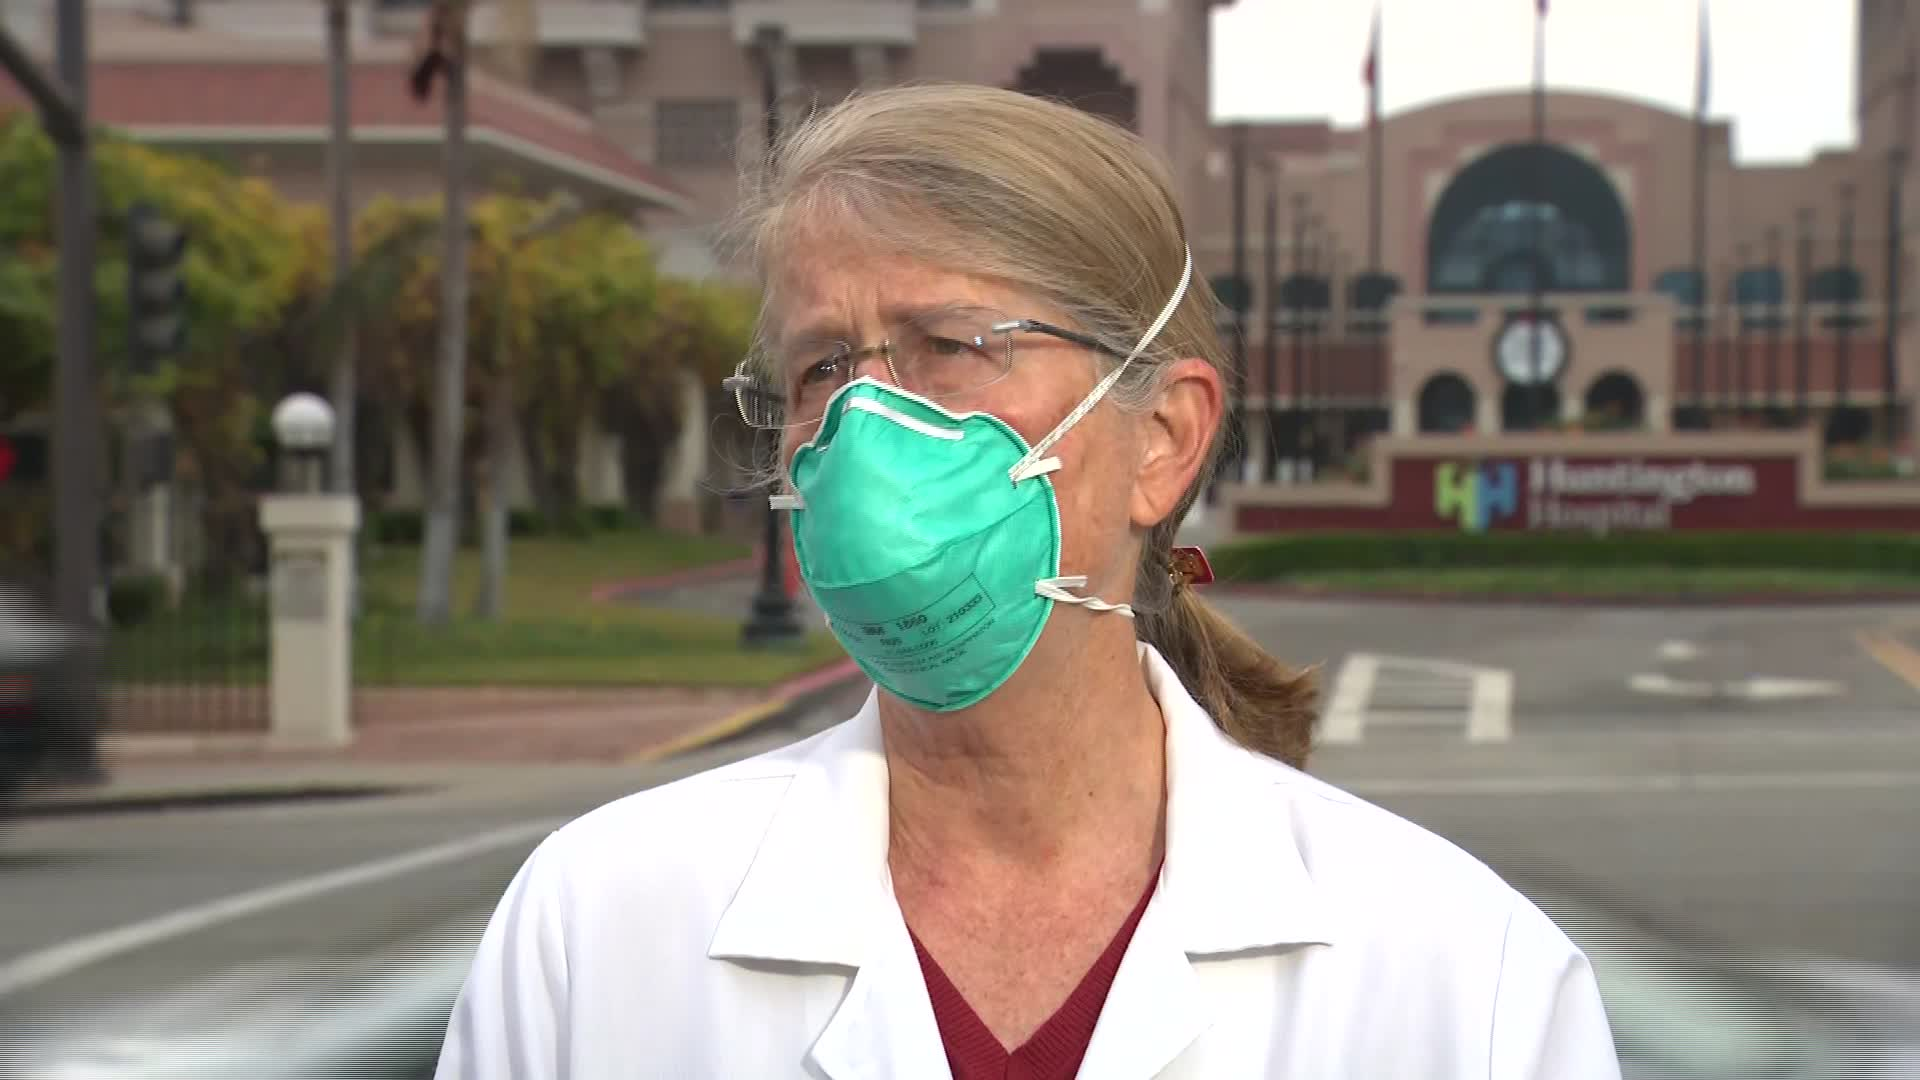 Infectious disease specialist Dr. Kimberly Shriner